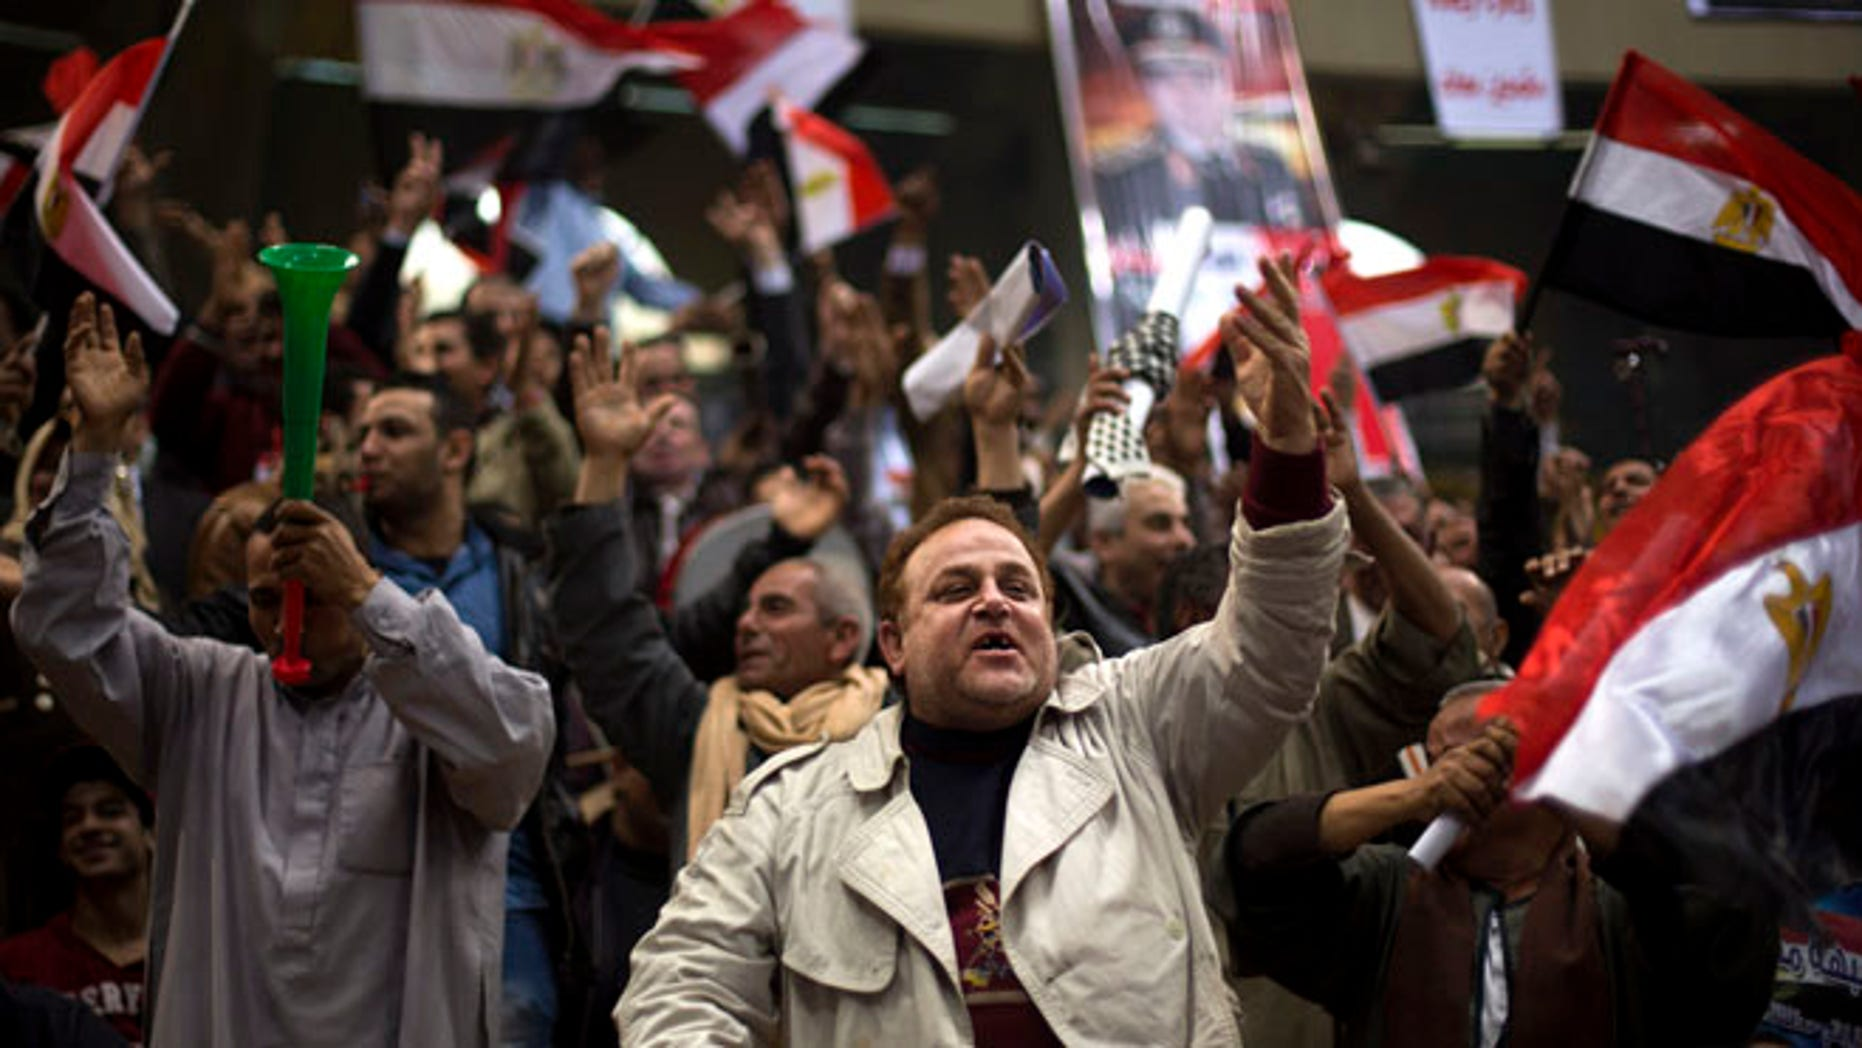 Jan. 21, 2014: Egyptians chant slogans as they attend a rally in support of Egypt's Defense Minister, Gen. Abdel-Fattah el-Sissi, in Cairo, Egypt.